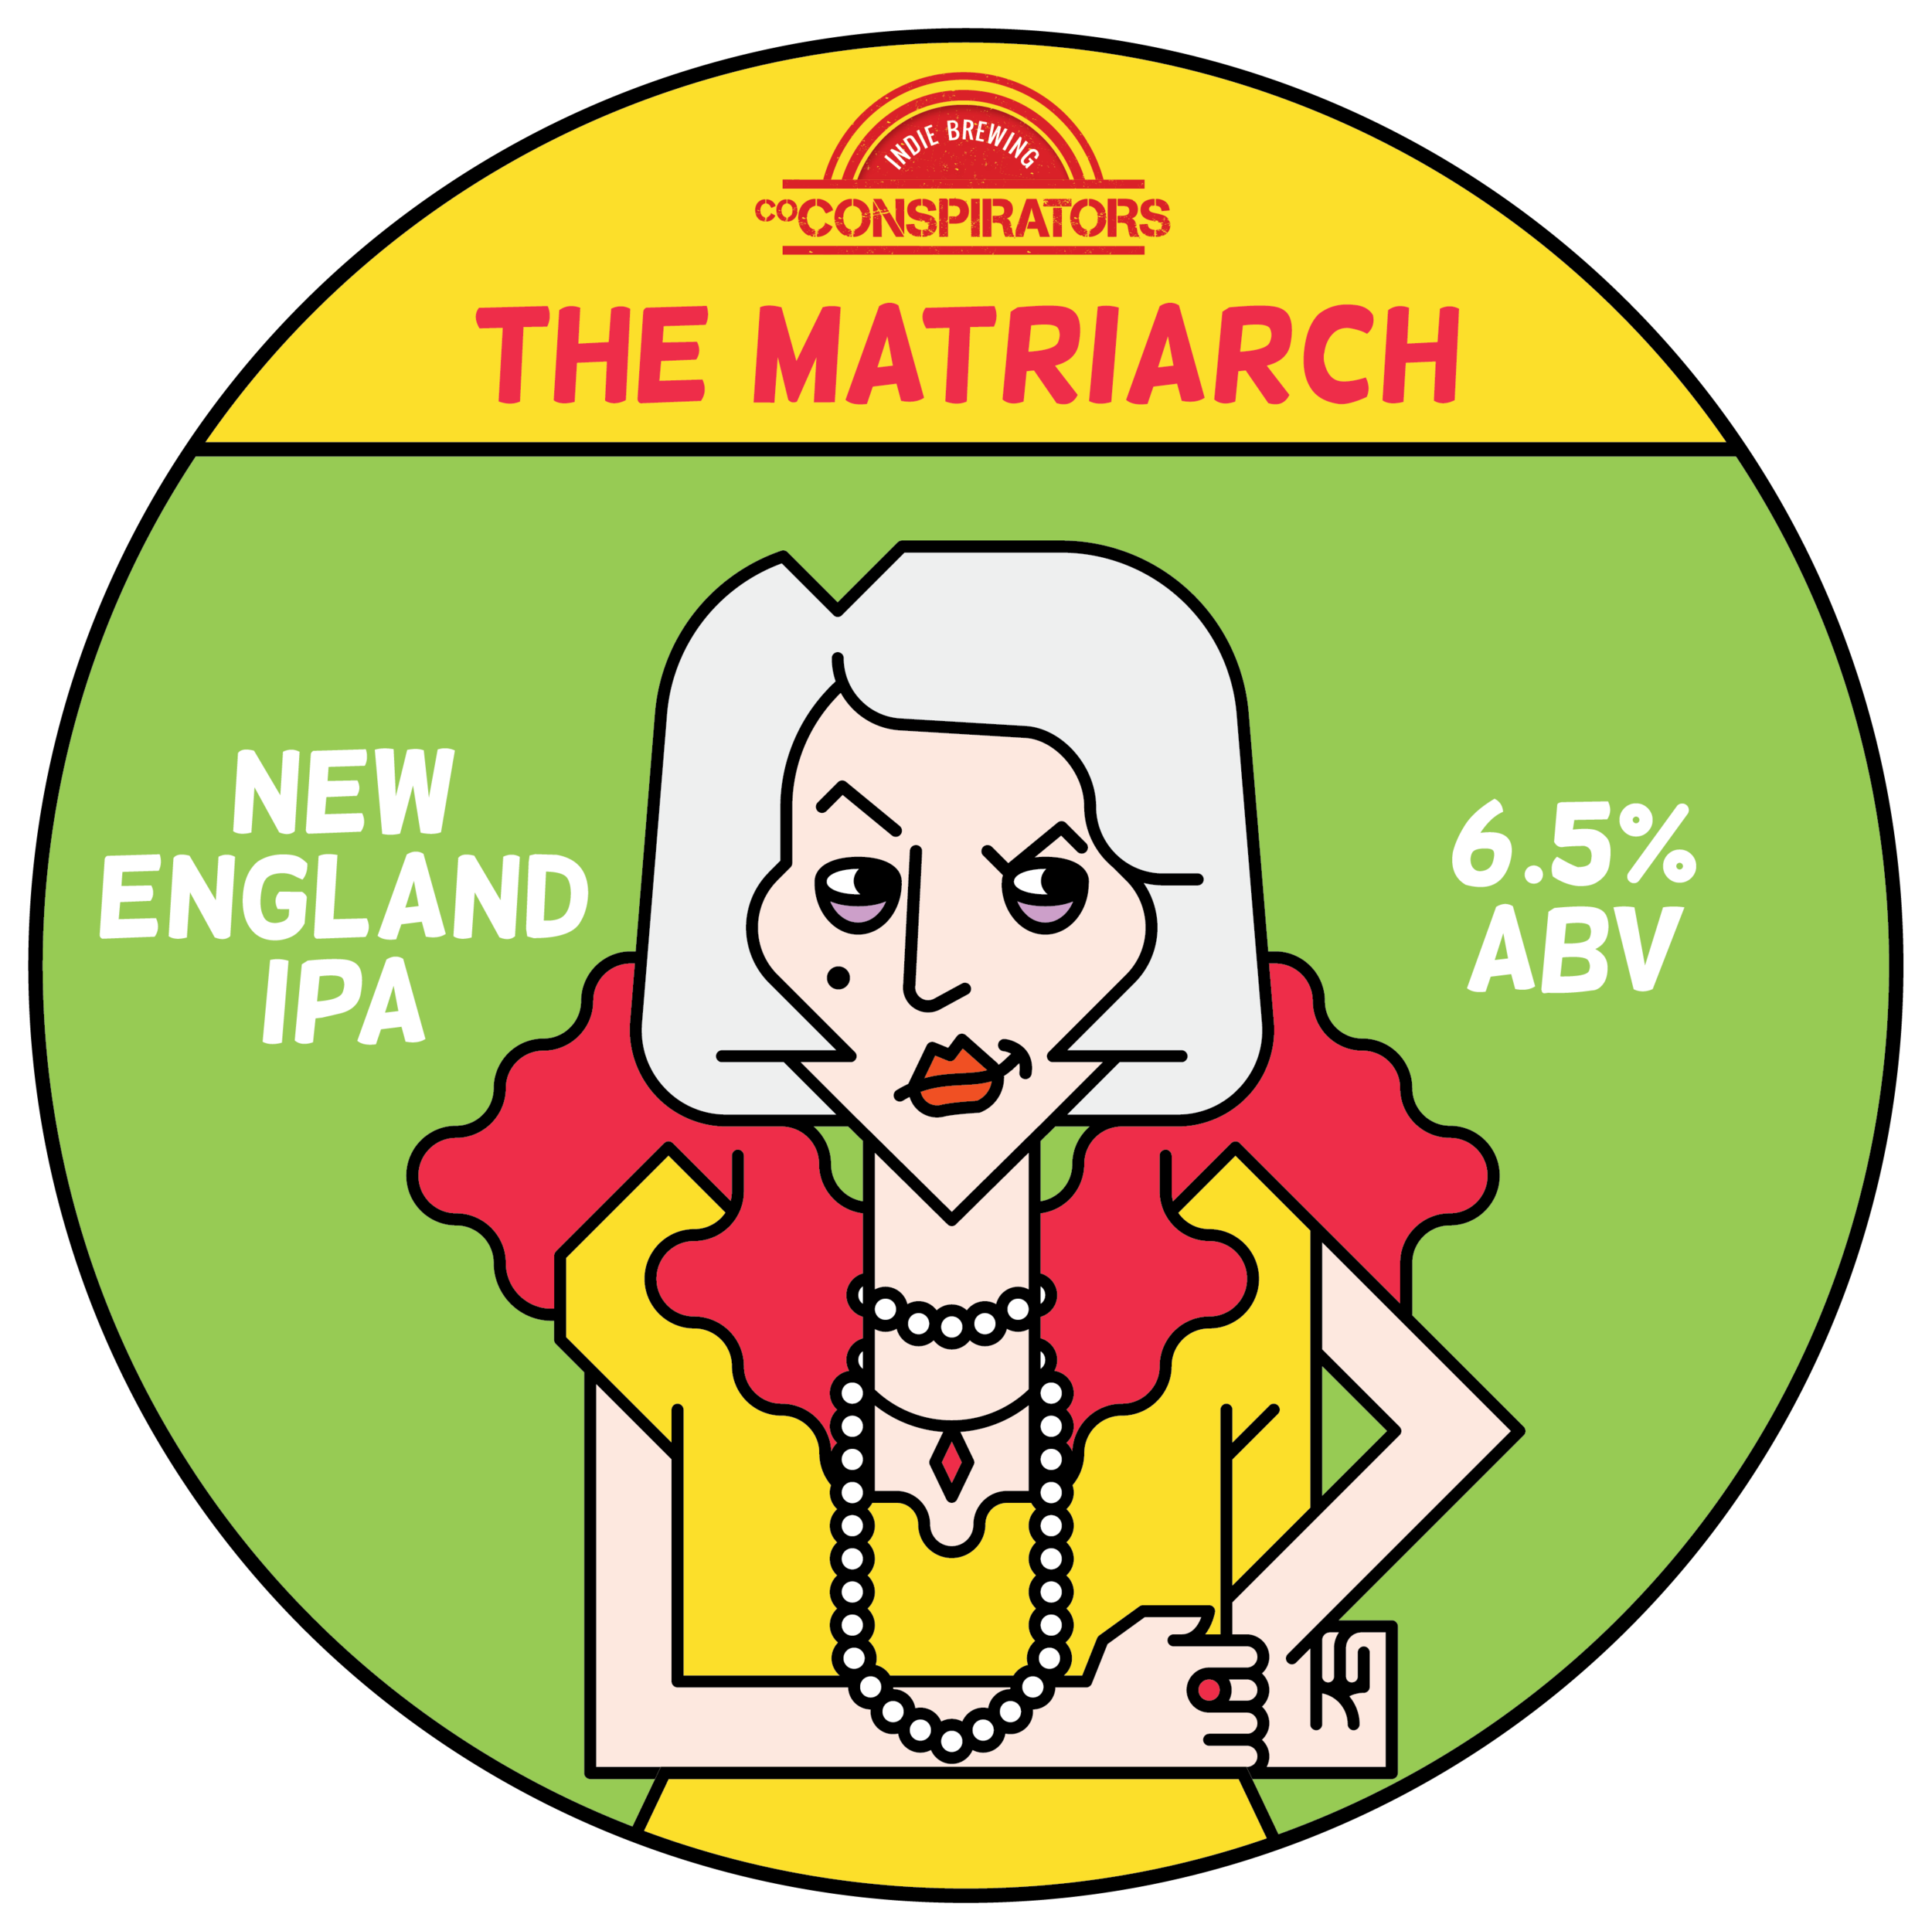 Matriarch Hazy IPA    (ABV 6.5%, IBU 48)    She may look like your mum on a big night out but the Matriarch is much more than meets the eye: a sheep dressed up in lambs clothing, slightly hazy and all foam on top. The juiciest rumours surround her life but they pale in comparison to the truth.She's generous with her perfume like this brew is with aromas of citrus, pineapple and stone fruit. She should be bitter from all she's seen and done, but instead she is a fresh, hopped up juicy number that's full bodied in every sense of the word.